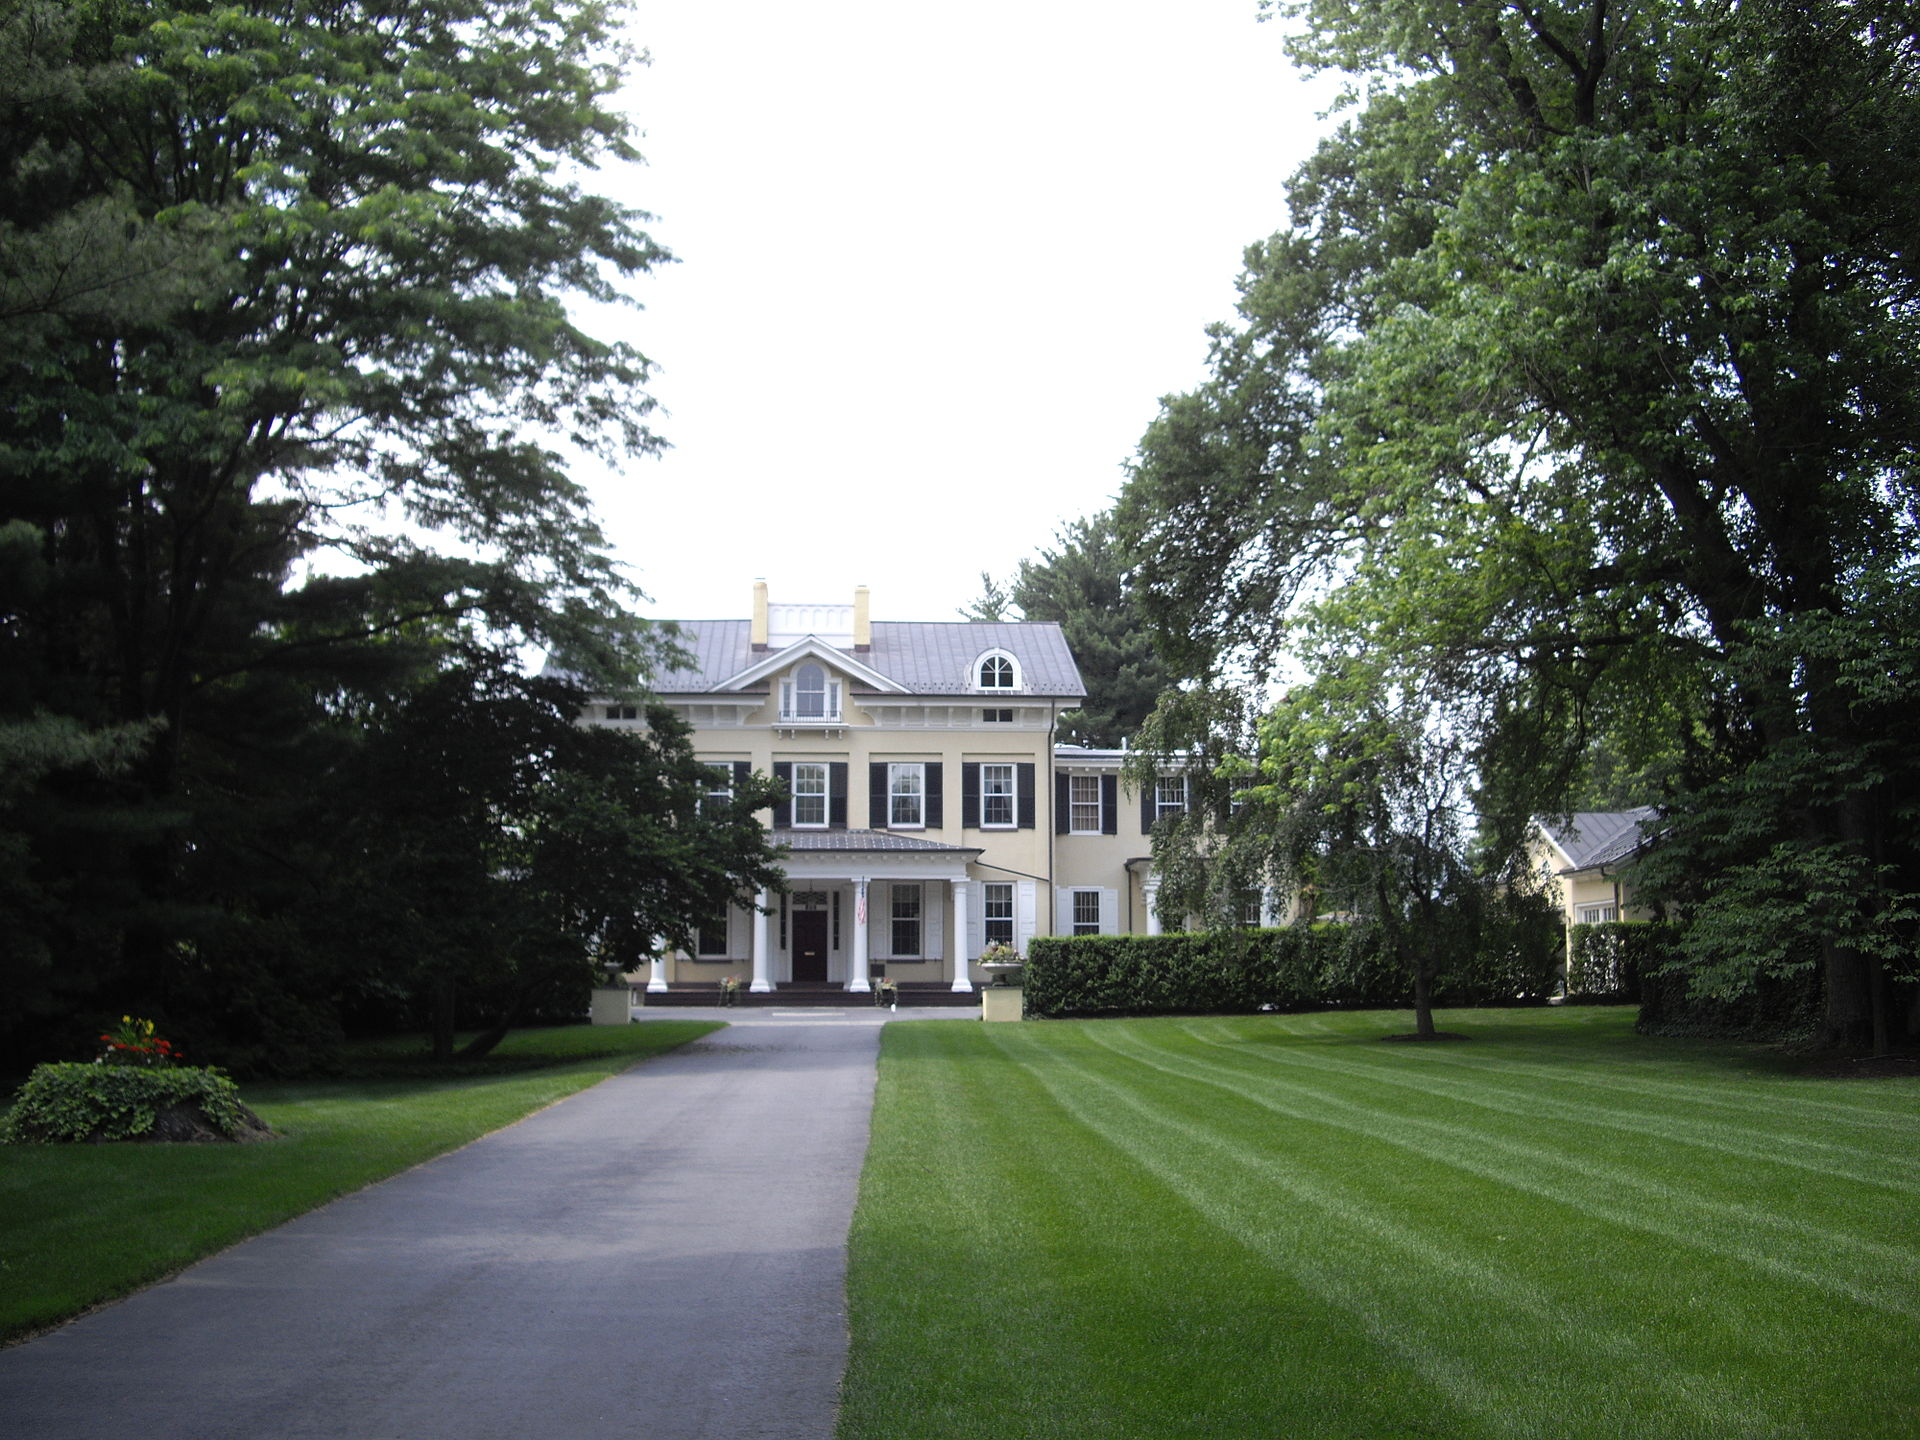 Westland Mansion was originally built in 1856 and was the home of President Grover Cleveland after his second term in office.